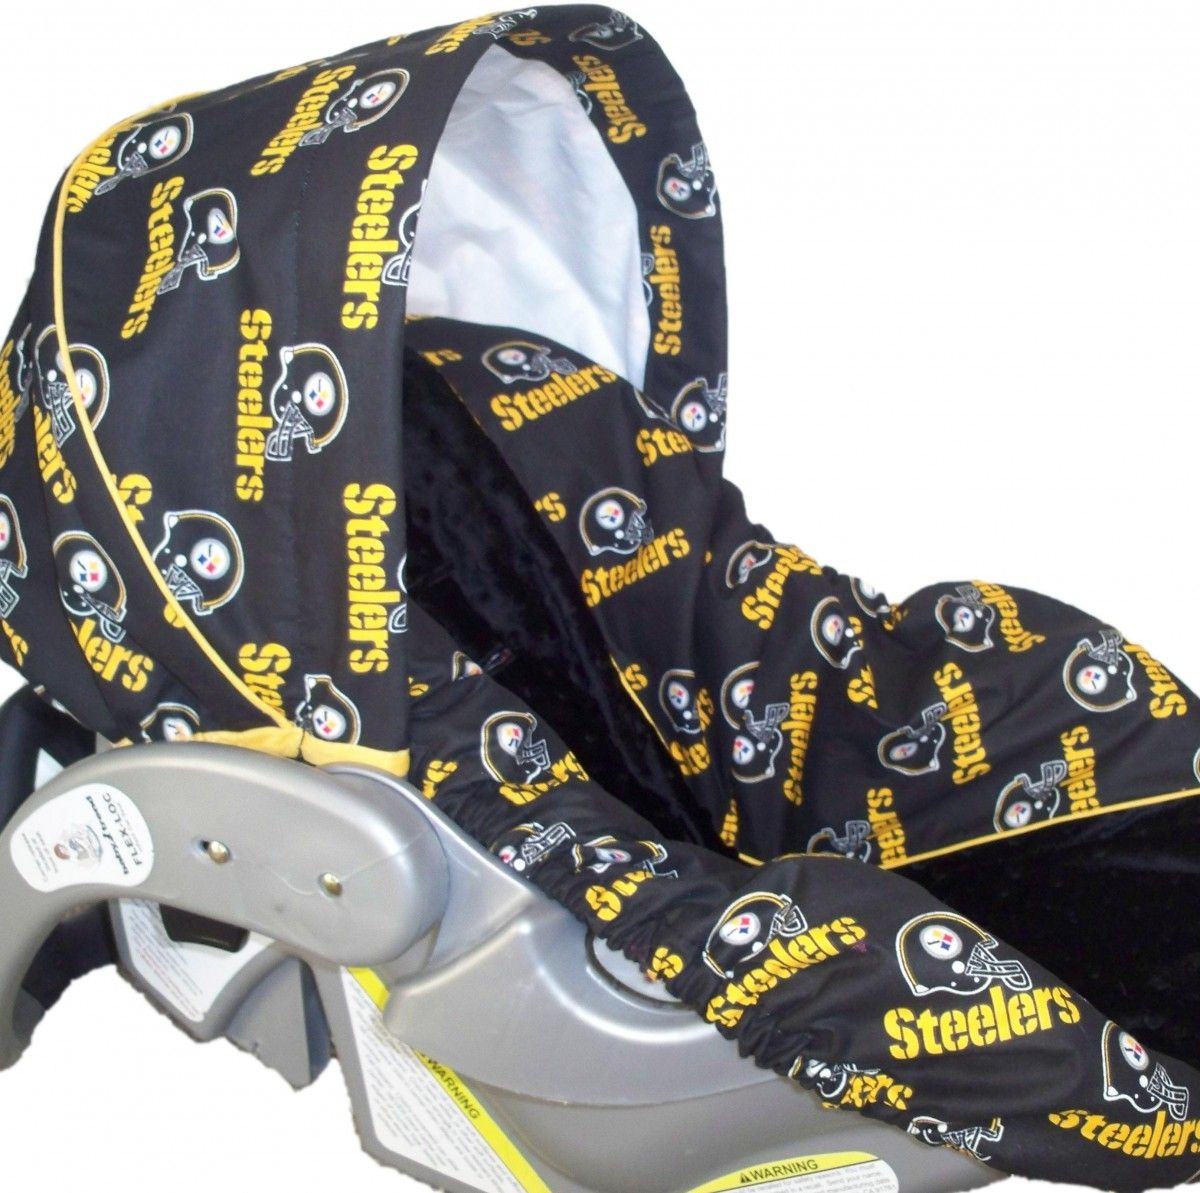 Shop for and buy pittsburgh steelers kids online at Macy's. Find pittsburgh steelers kids at Macy's.